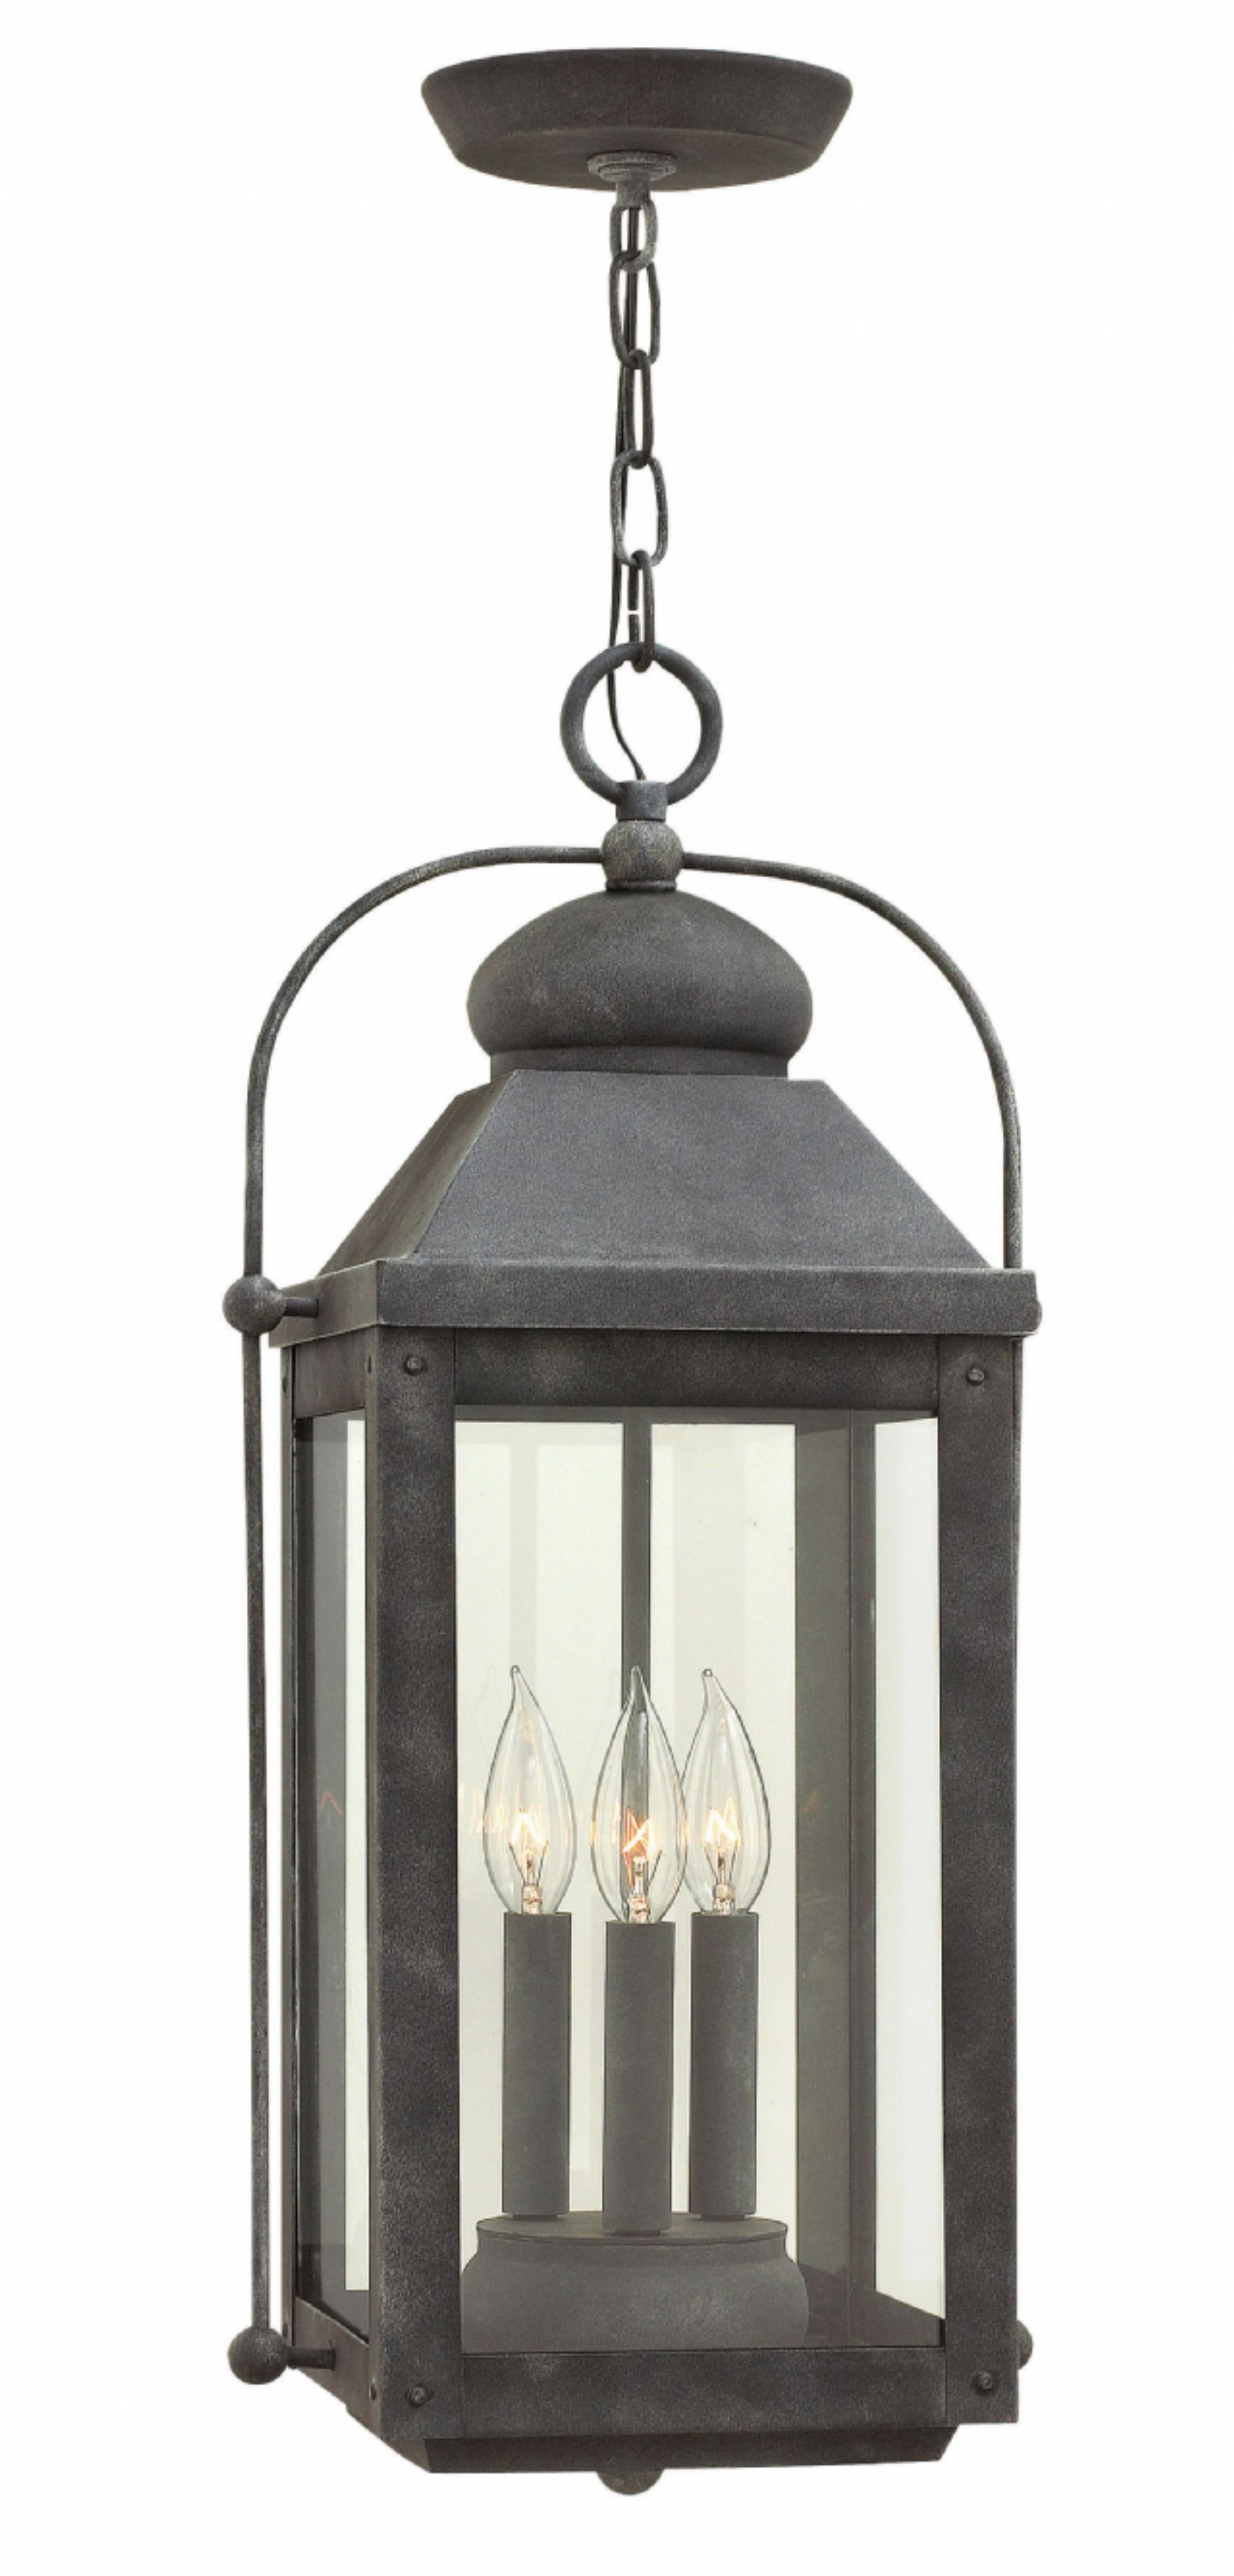 Aged Zinc Anchorage > Exterior Ceiling Mount Throughout Popular Hinkley Outdoor Hanging Lights (View 8 of 20)